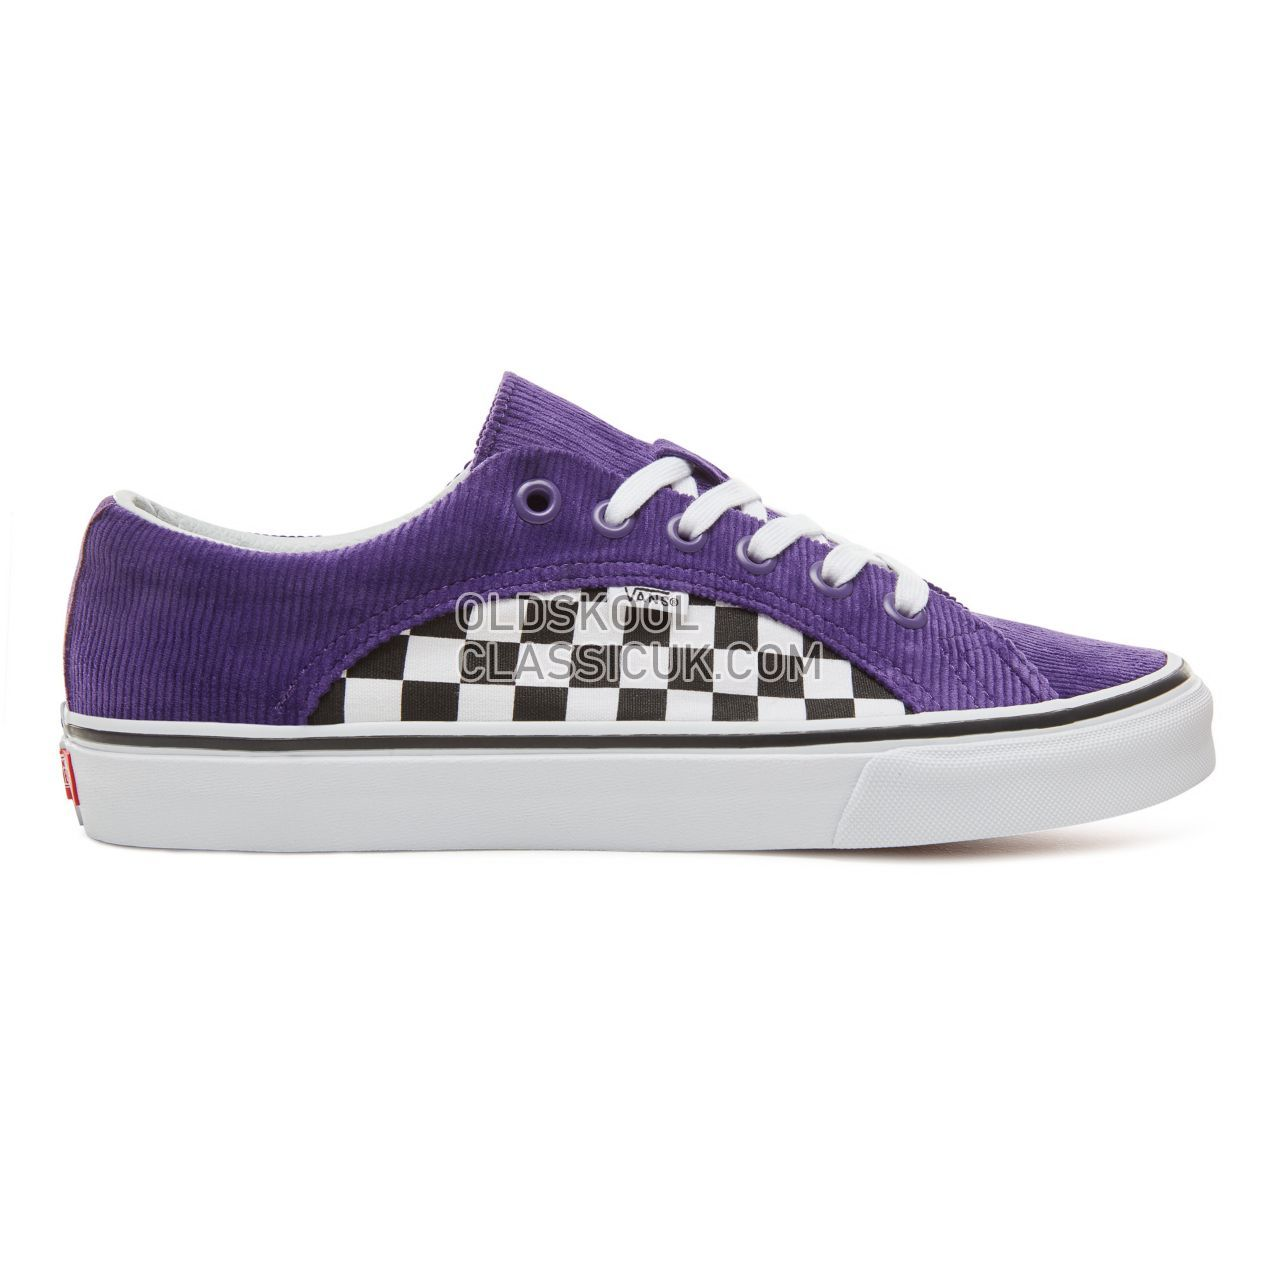 Vans Checkerboard Lampin Sneakers Mens (Checker/Cord) Heliotrope/True White VA38FIU9D Shoes